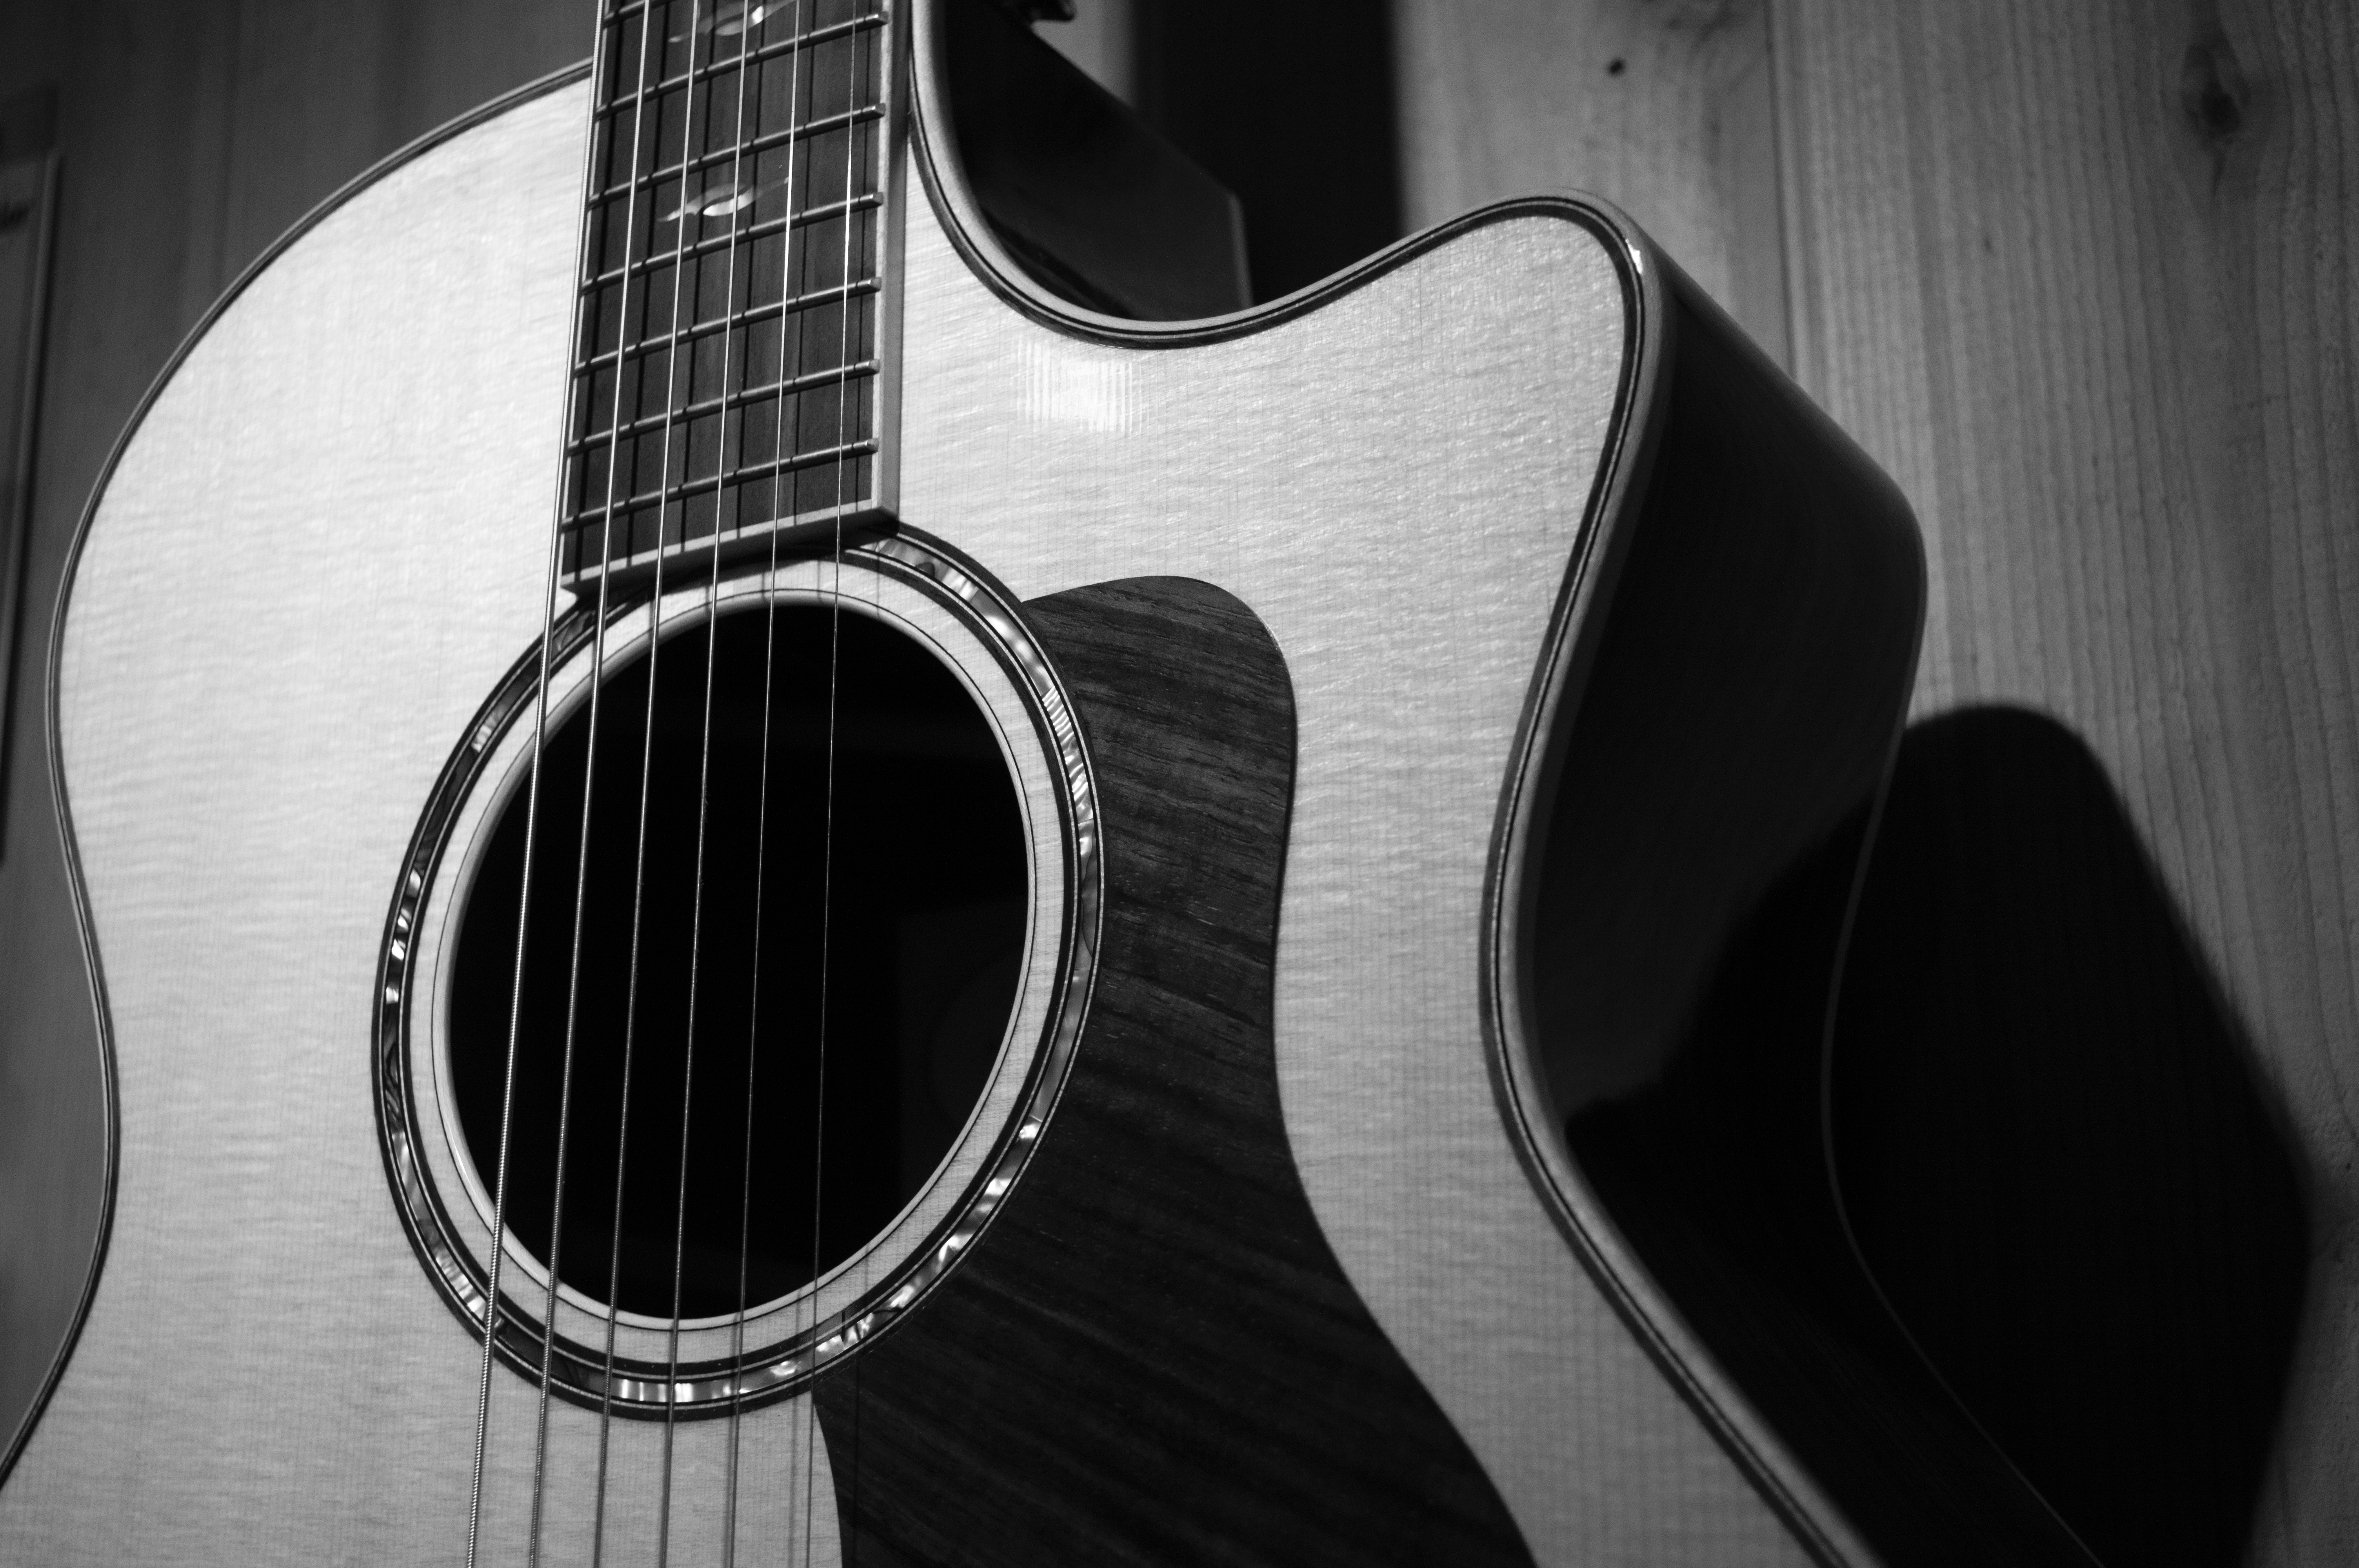 Acoustic Guitar In Grayscale Photo Free Stock